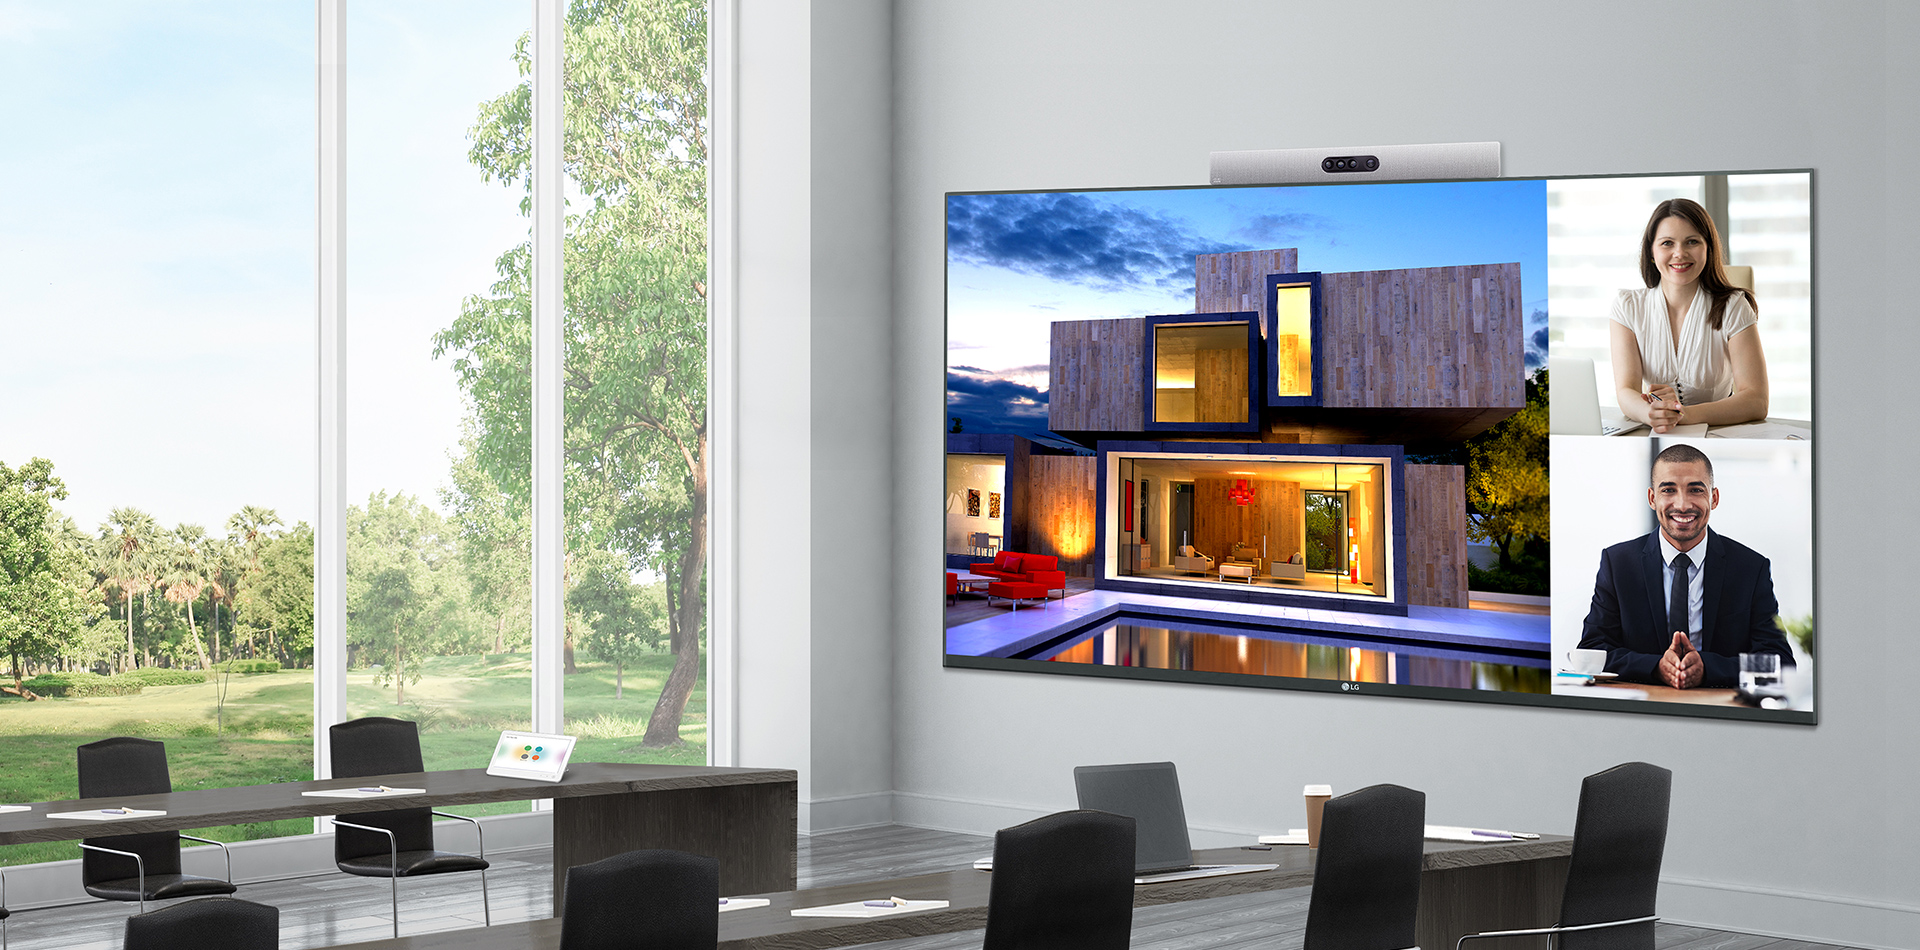 130 inch all-in-one LED screen installed in a meeting room.